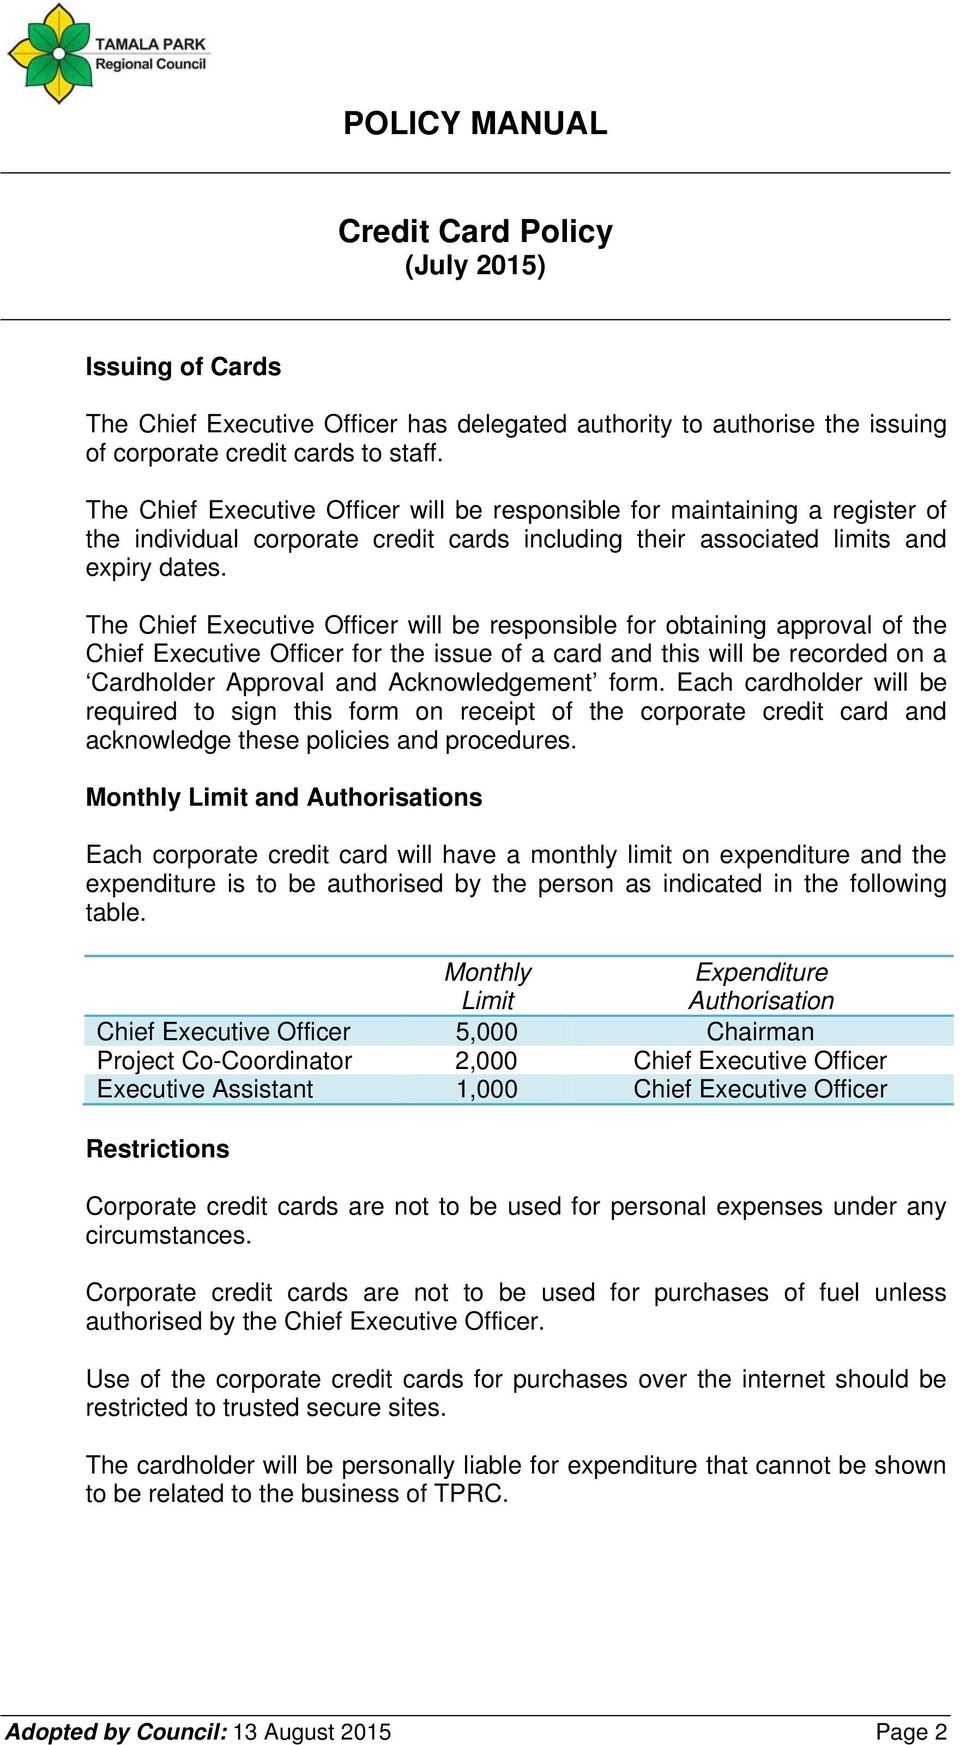 The Chief Executive Officer will be responsible for obtaining approval of the Chief Executive Officer for the issue of a card and this will be recorded on a Cardholder Approval and Acknowledgement